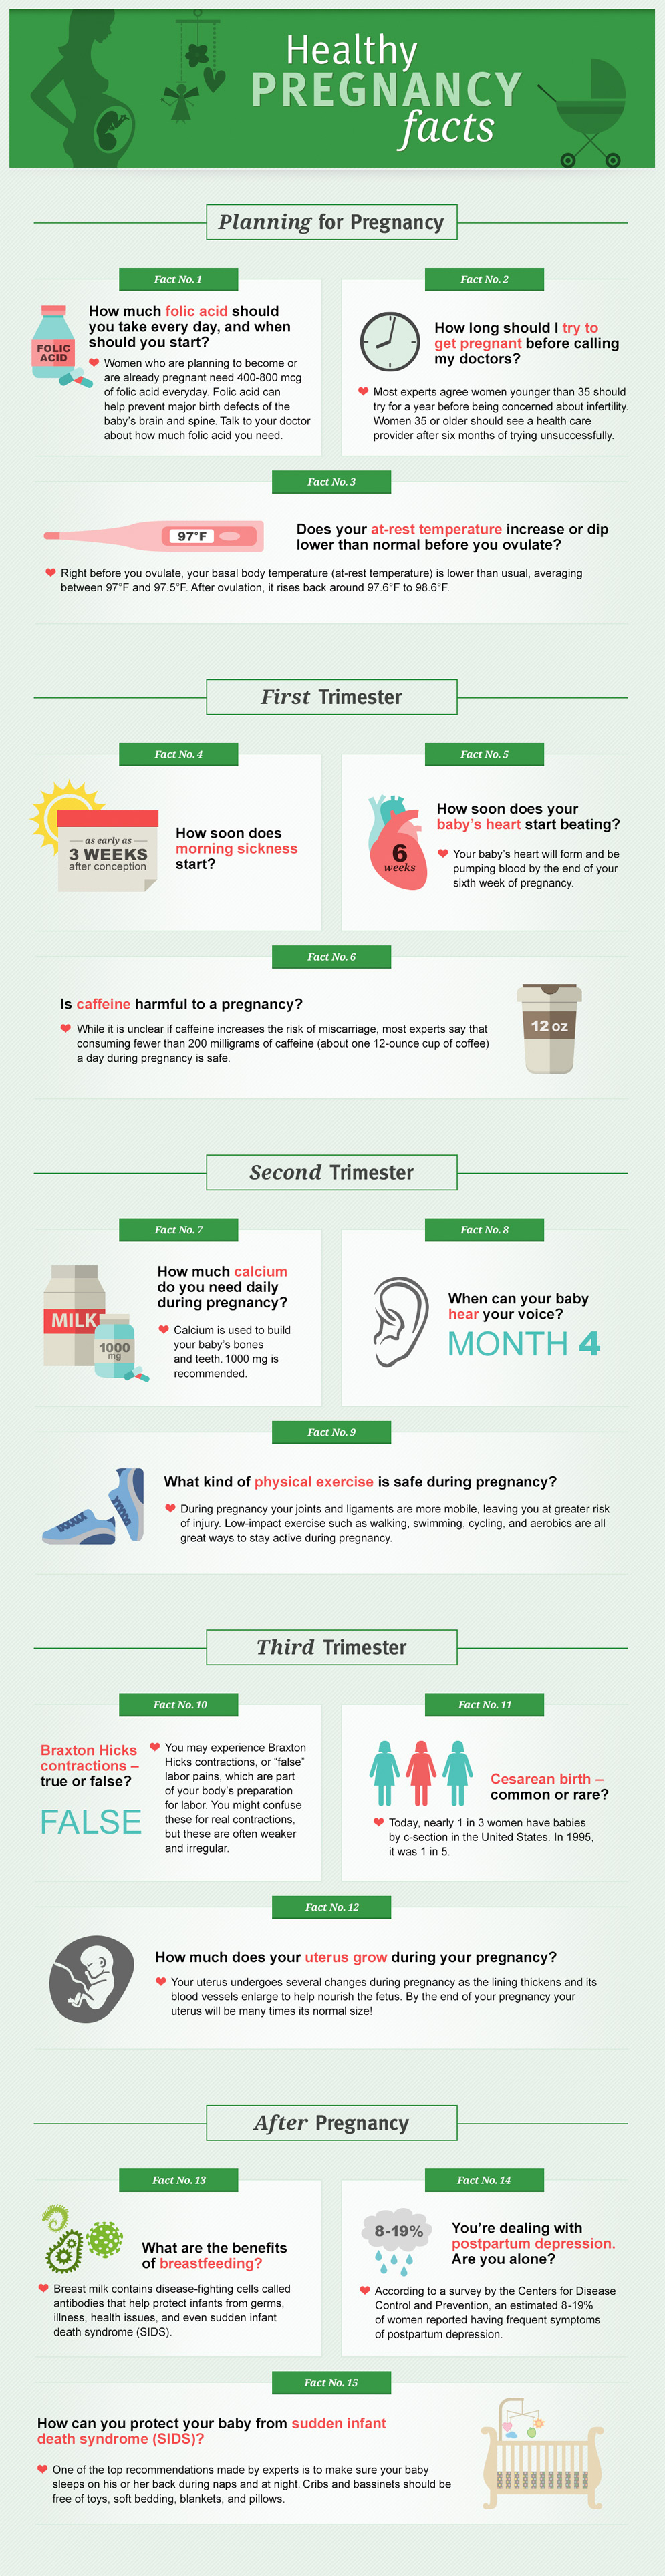 healthy pregnancy facts